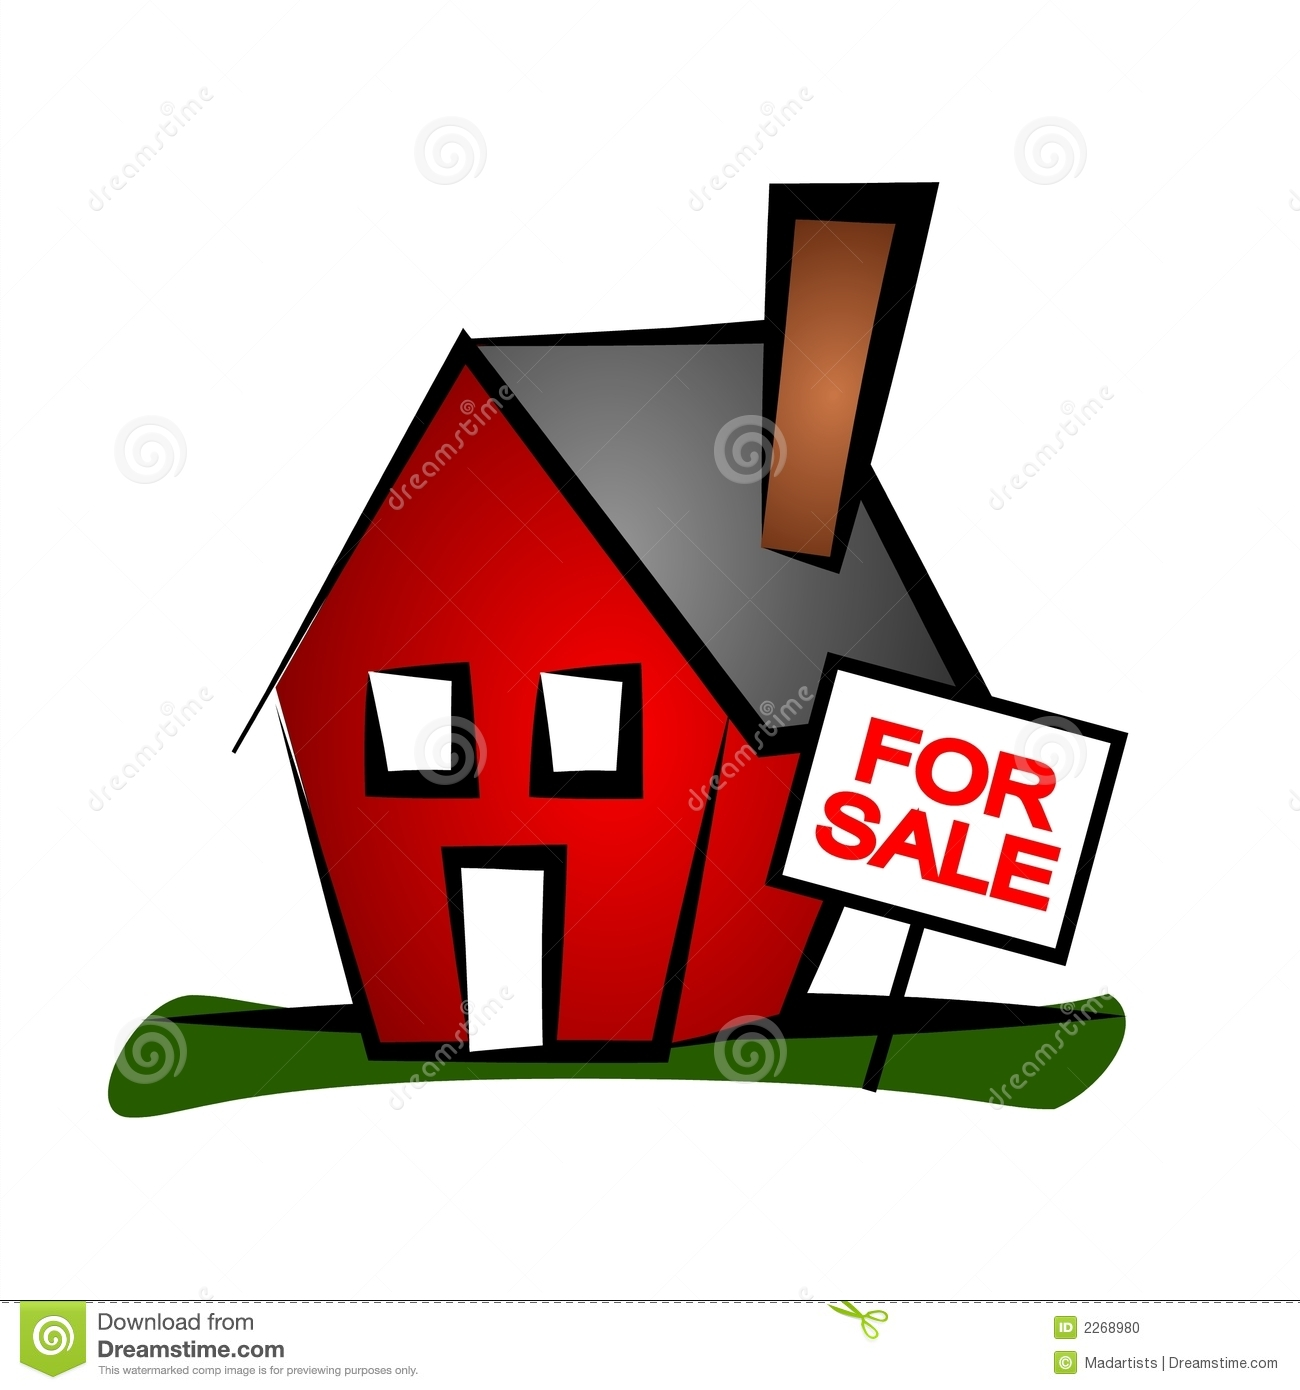 Clip Art Real Estate Illustration Of A L-Clip Art Real Estate Illustration Of A Little Red House With A For-2